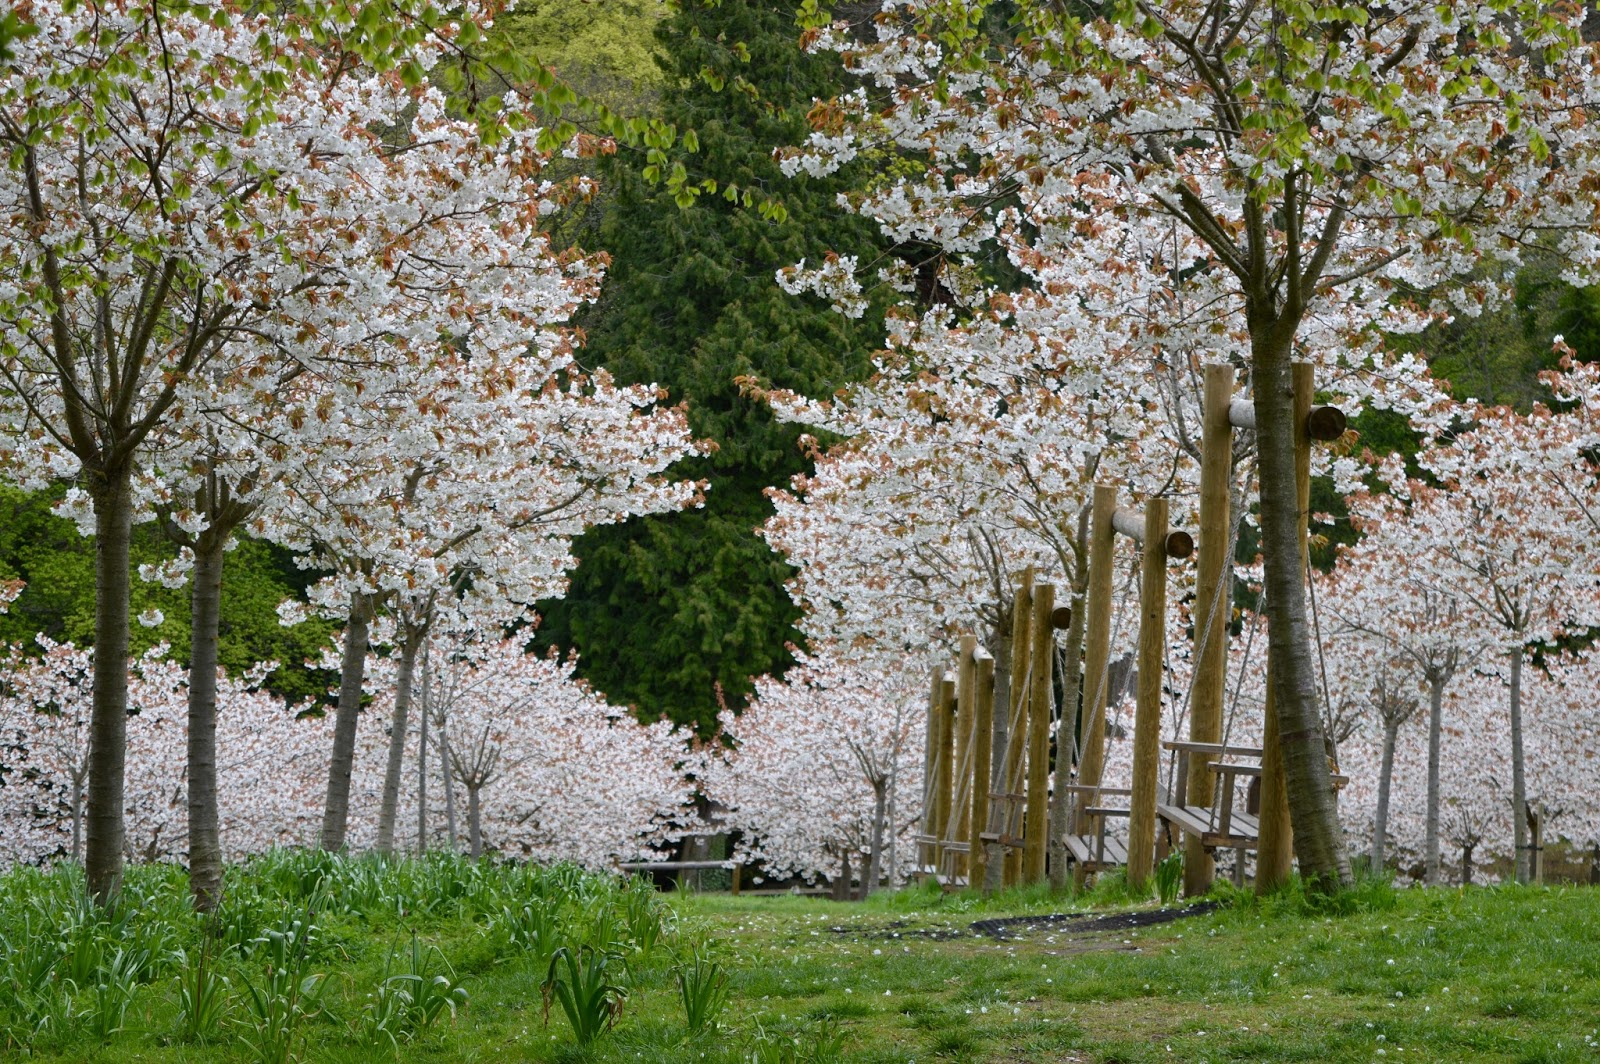 The Cherry Blossom Orchard at The Alnwick Garden - pink blossom